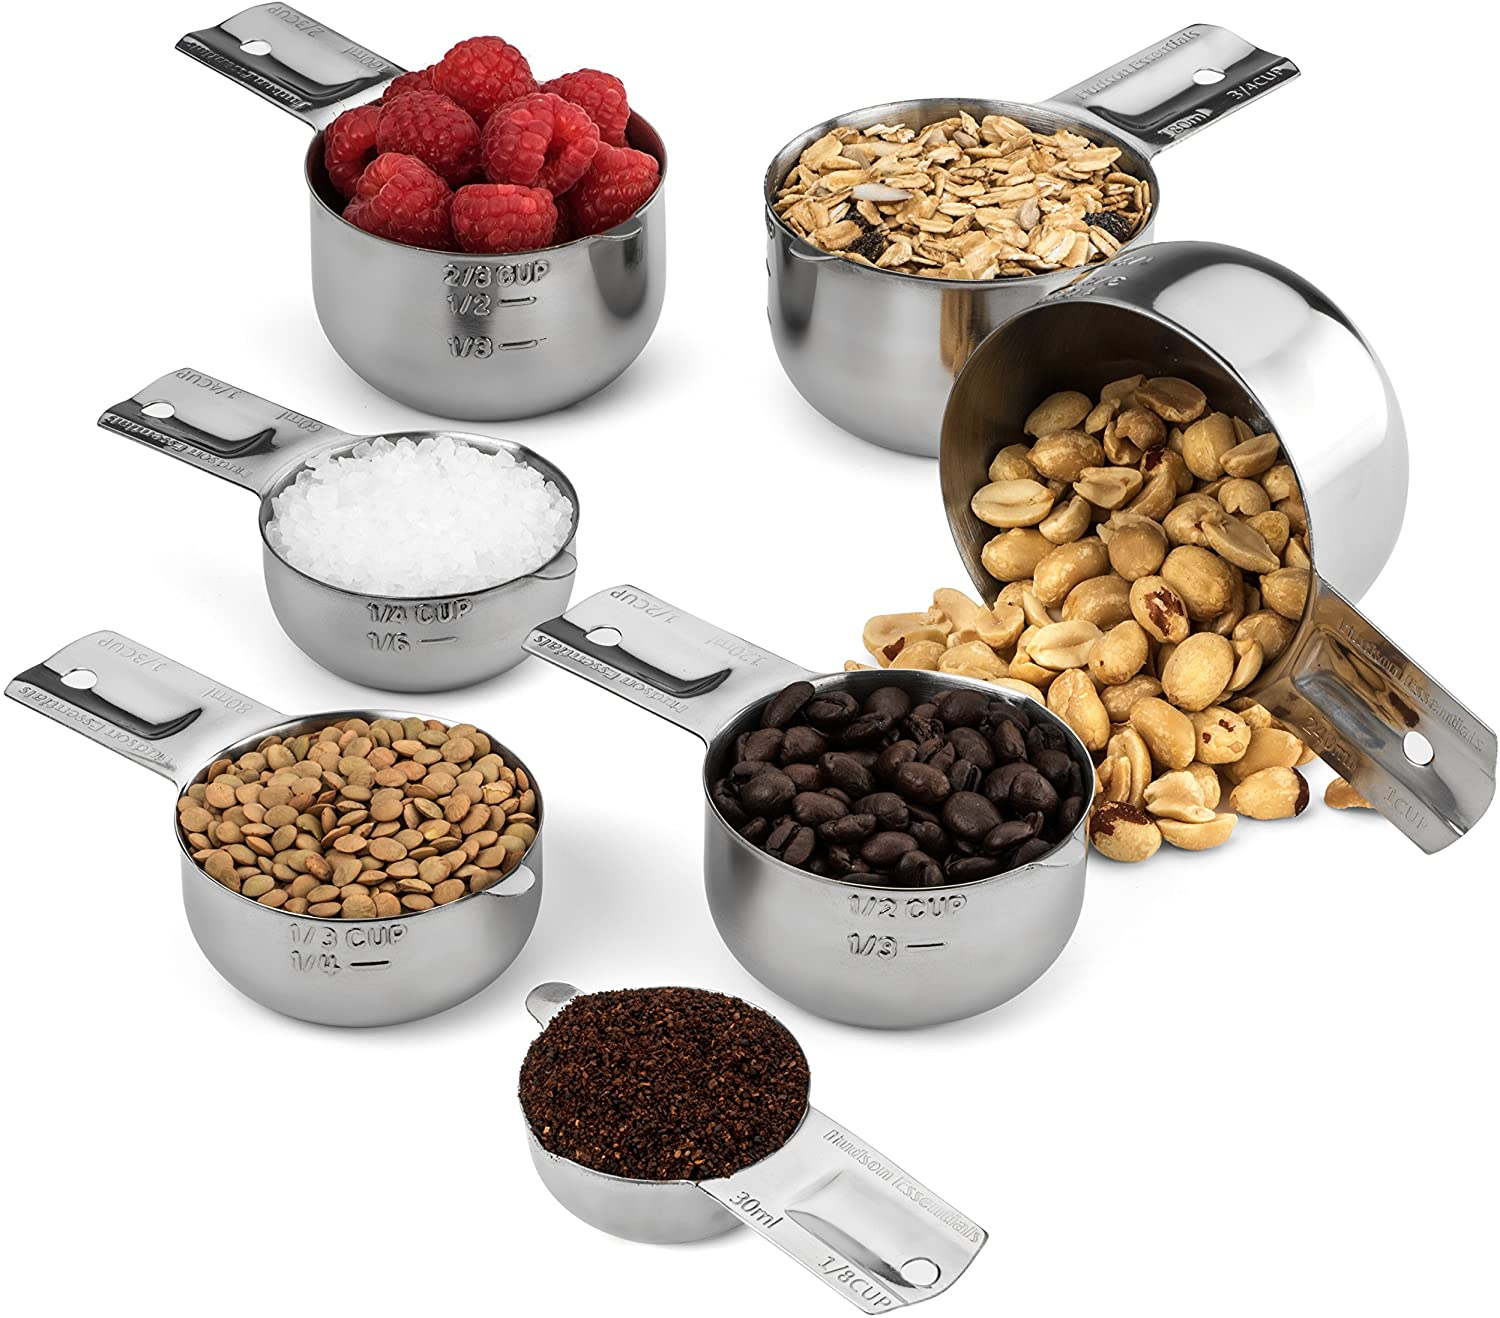 Hudson Essentials Stainless Steel Measuring Cup - Replacements and Odd Size Measuring Cups